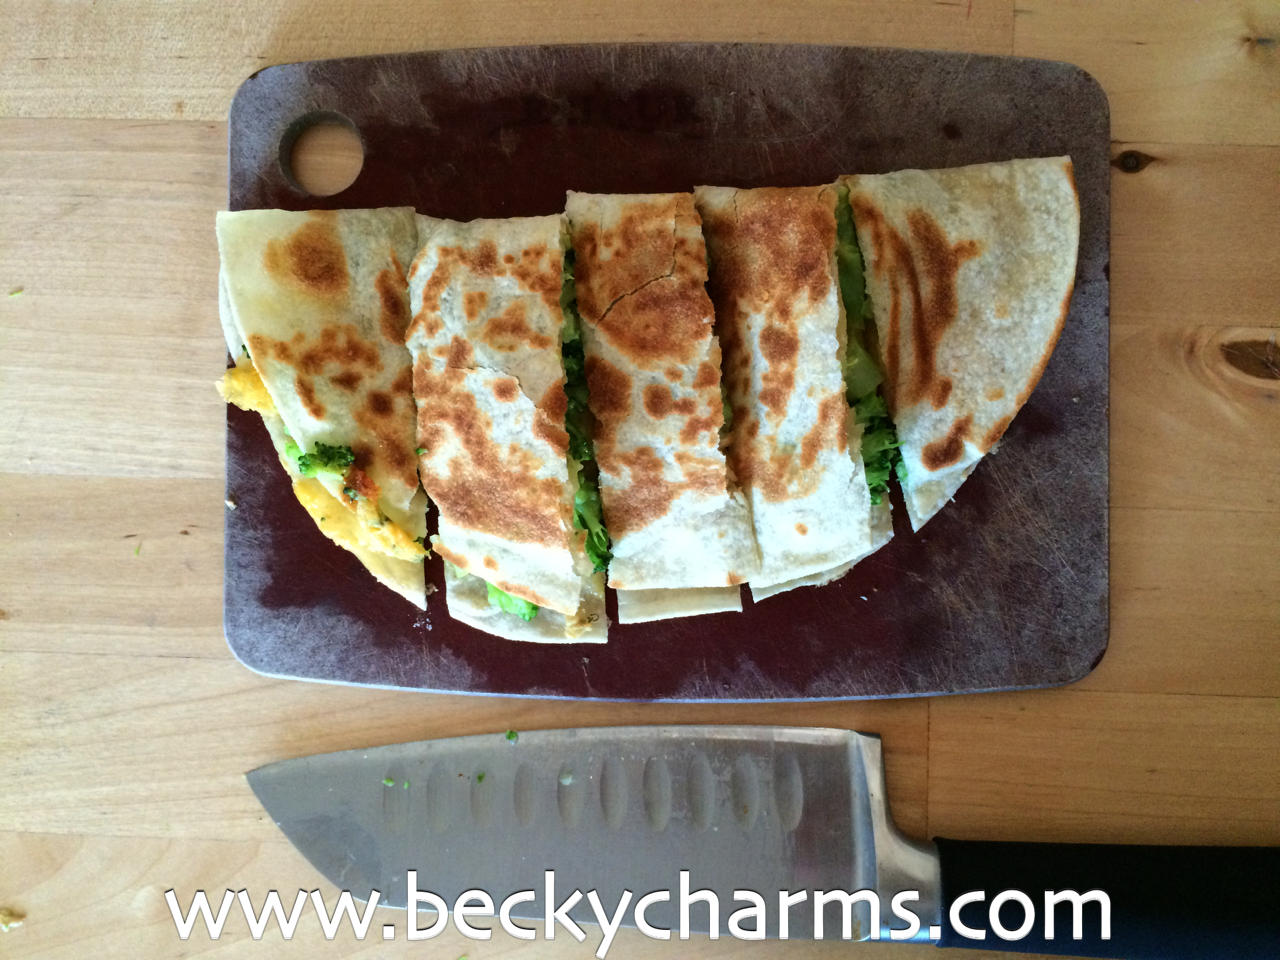 Cheddar Broccoli Vegetarian Quesadilla : The Fancy Quesadilla Series by BeckyCharms